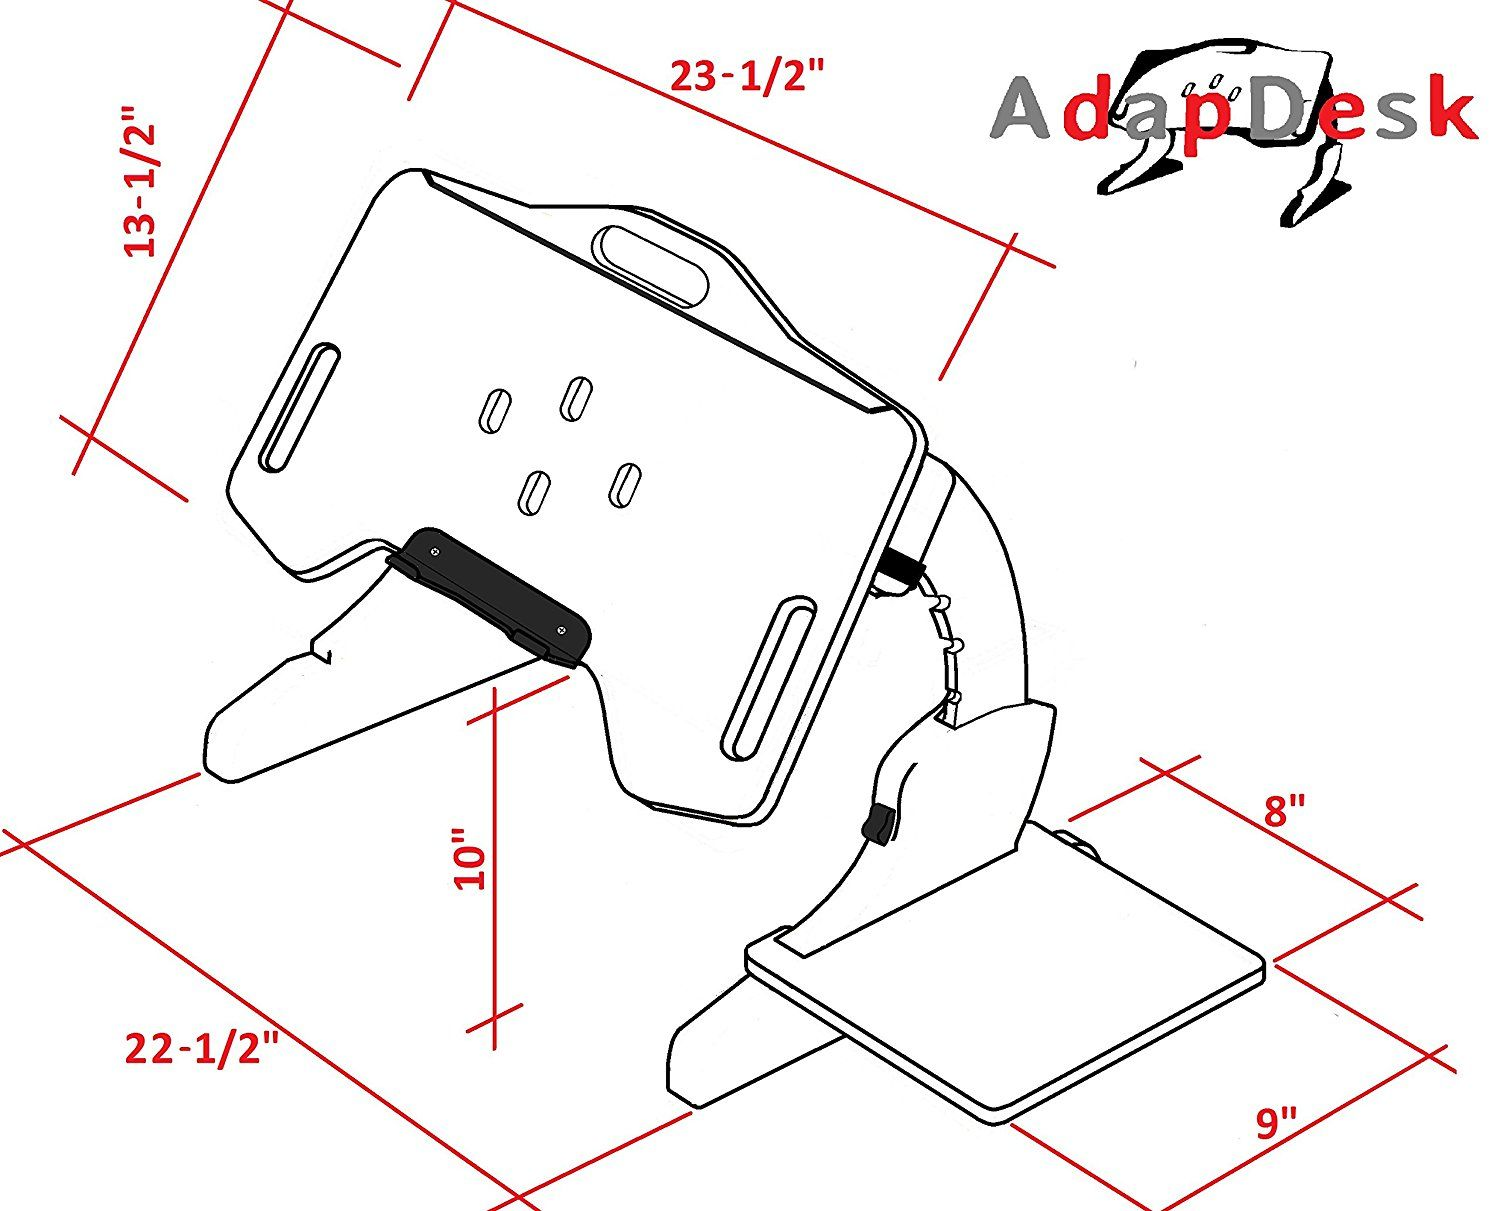 Adapdesk Portabe Foldable Adjustable Desk Laptop Bed Tray Notebook